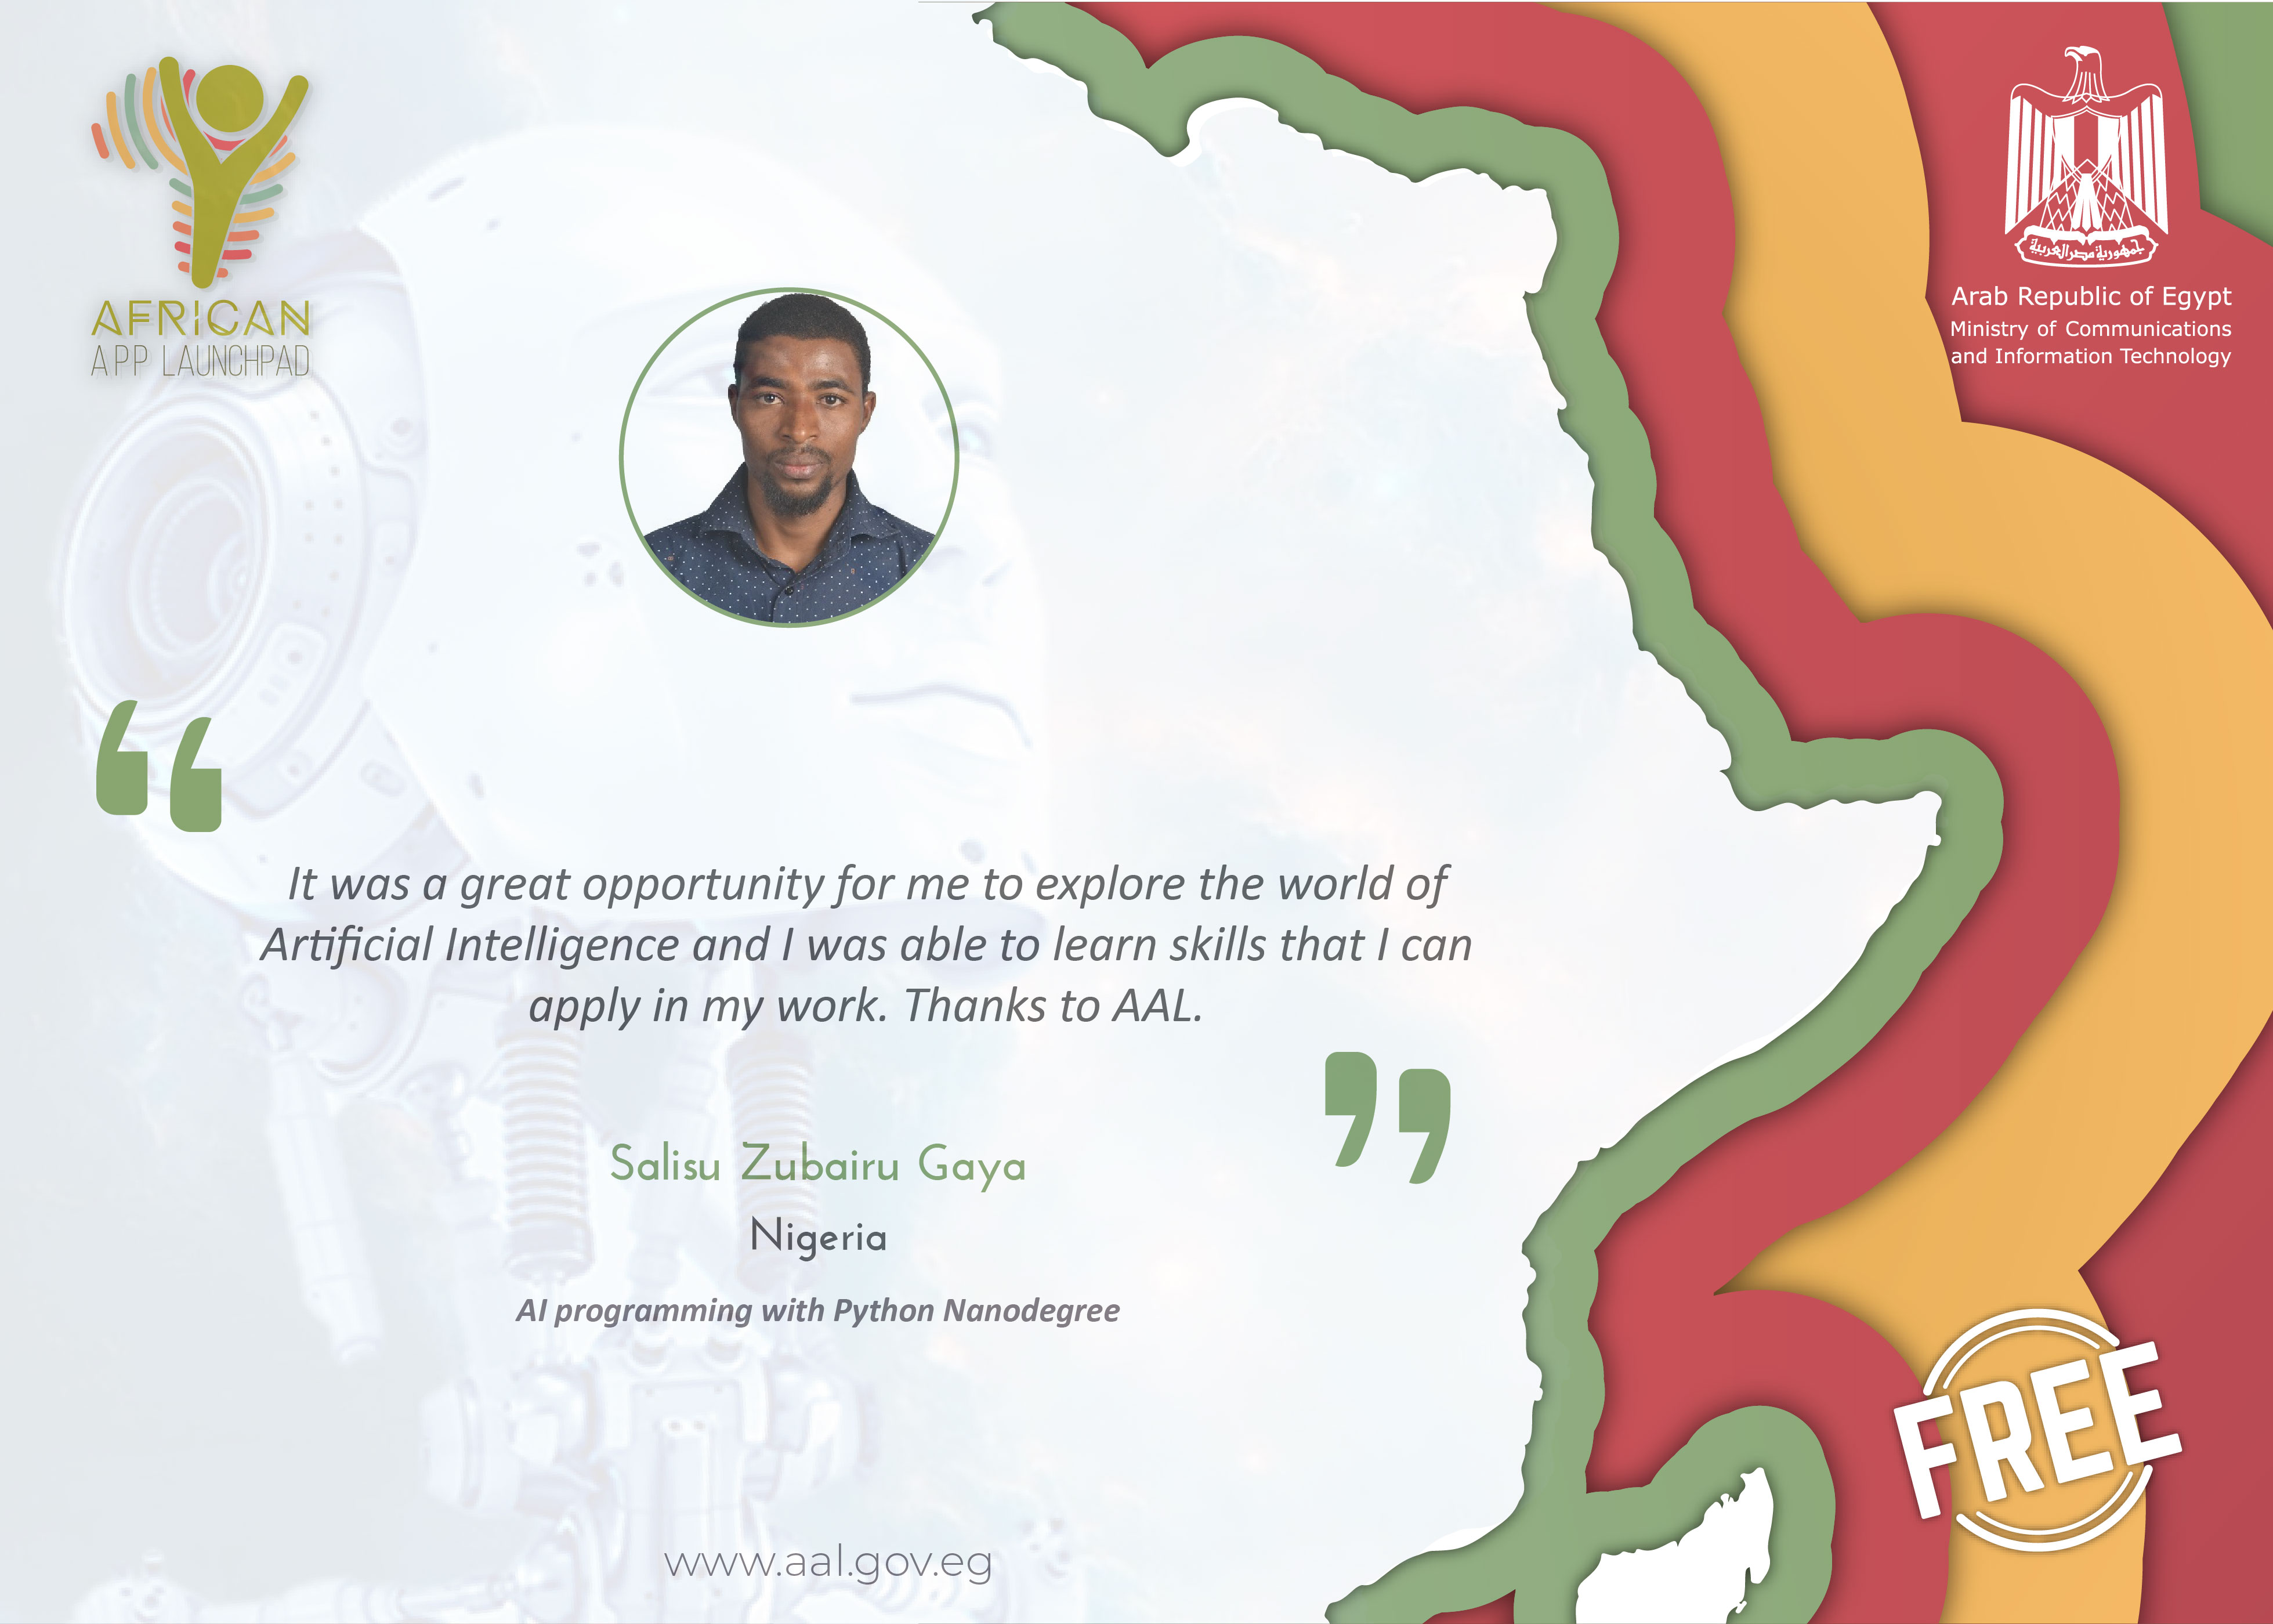 AAL AI Programming with Python Nanodegree Graduate's Testimonial from Nigeria.